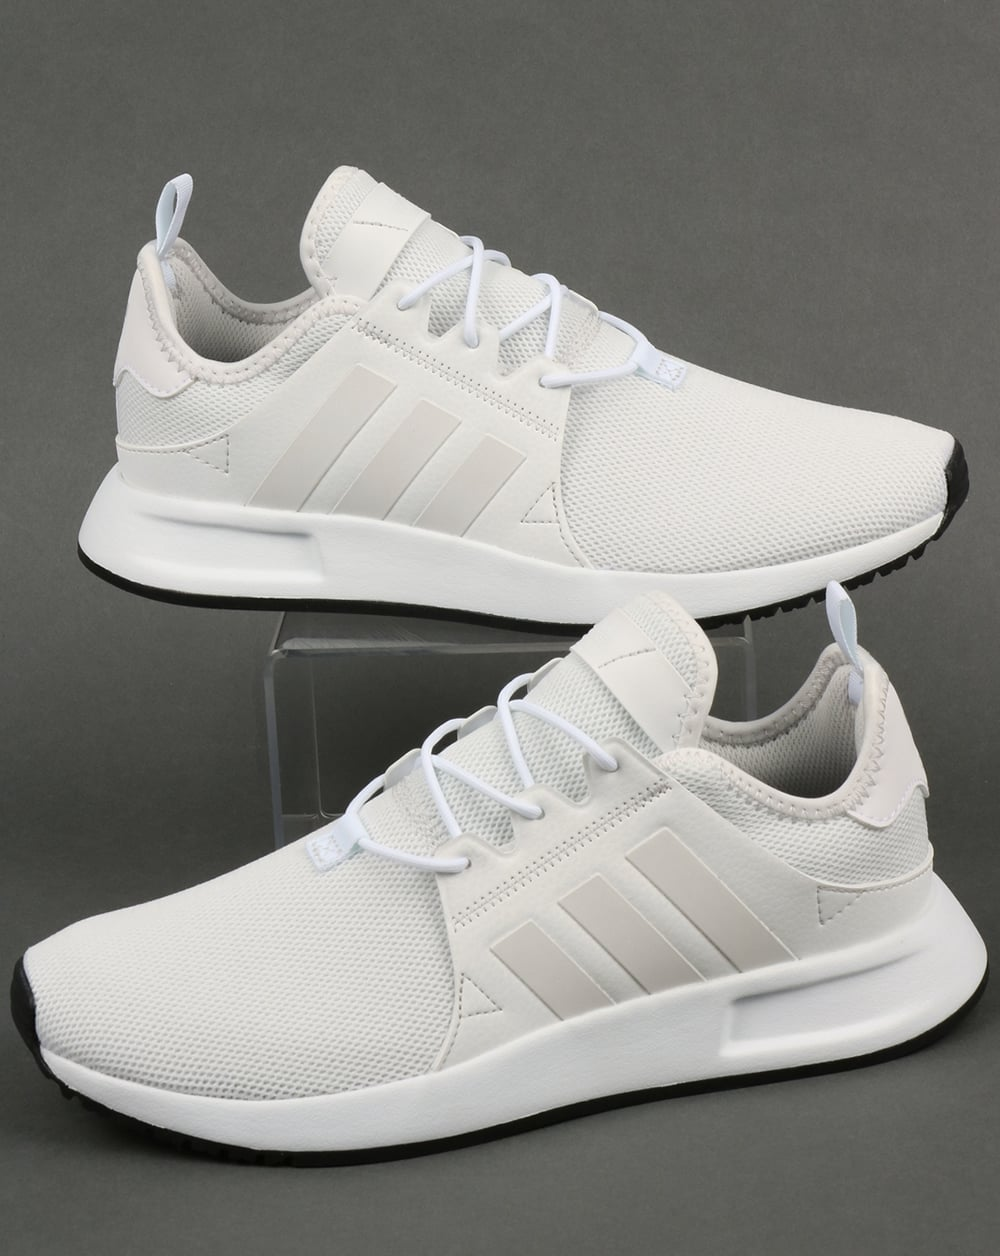 Adidas Has The Best Shoes